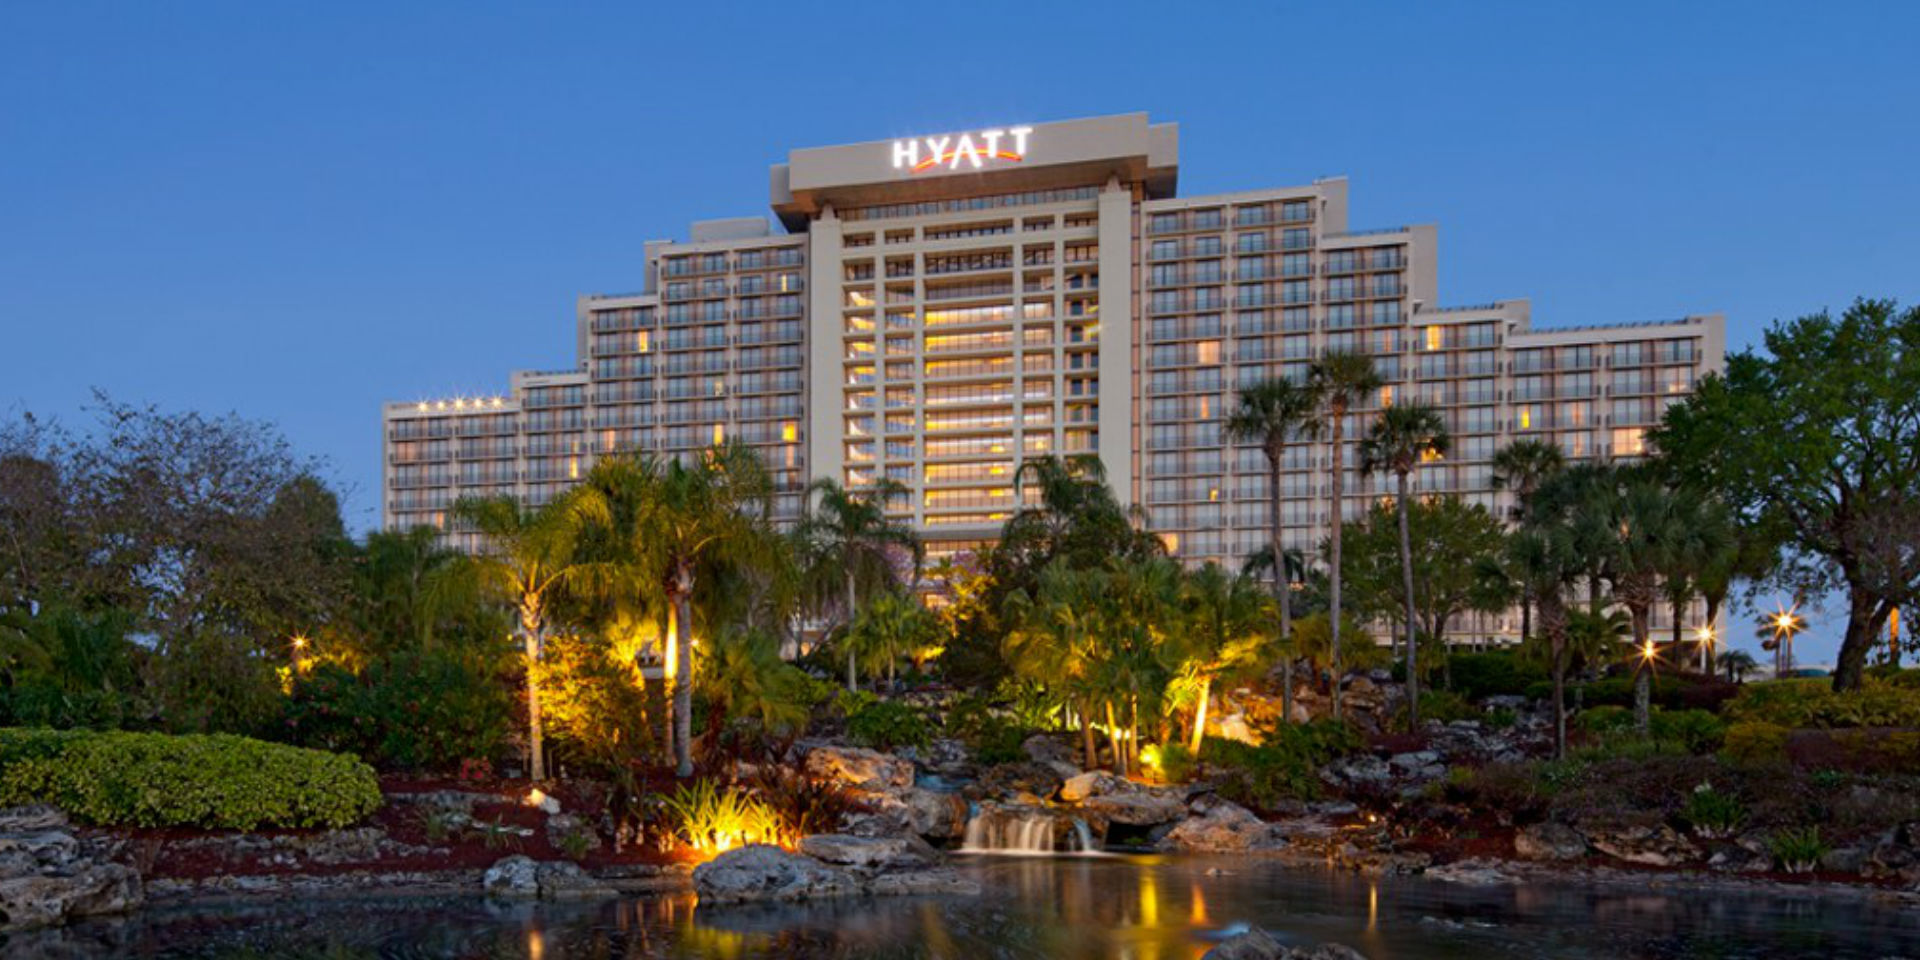 Hyatt Strikes Balance Between Growing Franchising and Focusing on Ownership